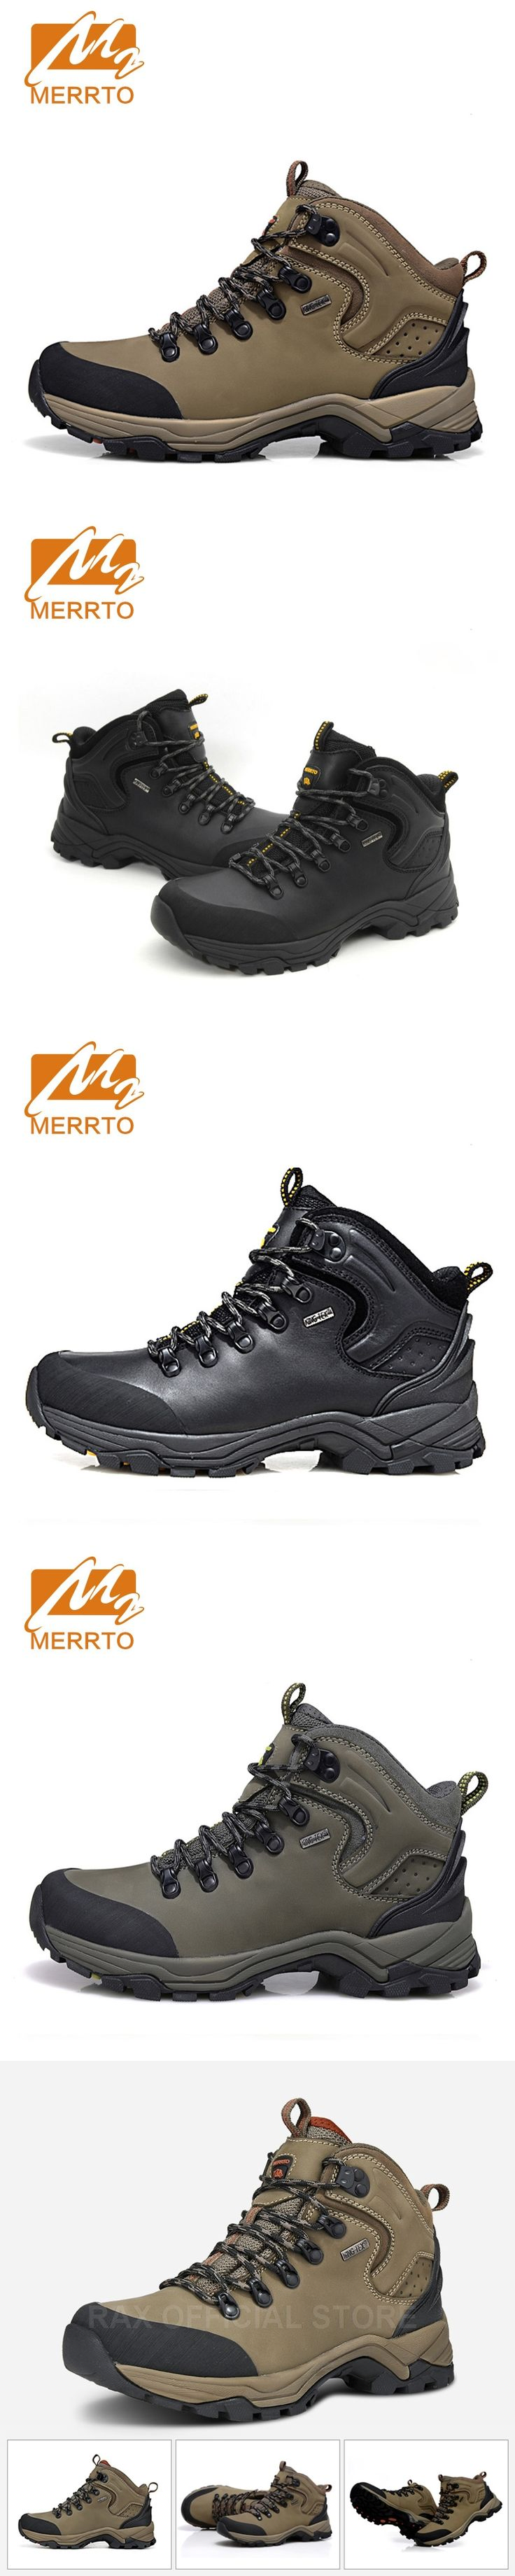 MERRTO Brand Man Genuine Leather Waterproof Hiking Boots Outdoor Hiking Shoes For Men Women Breathable Walking Trekking Shoes